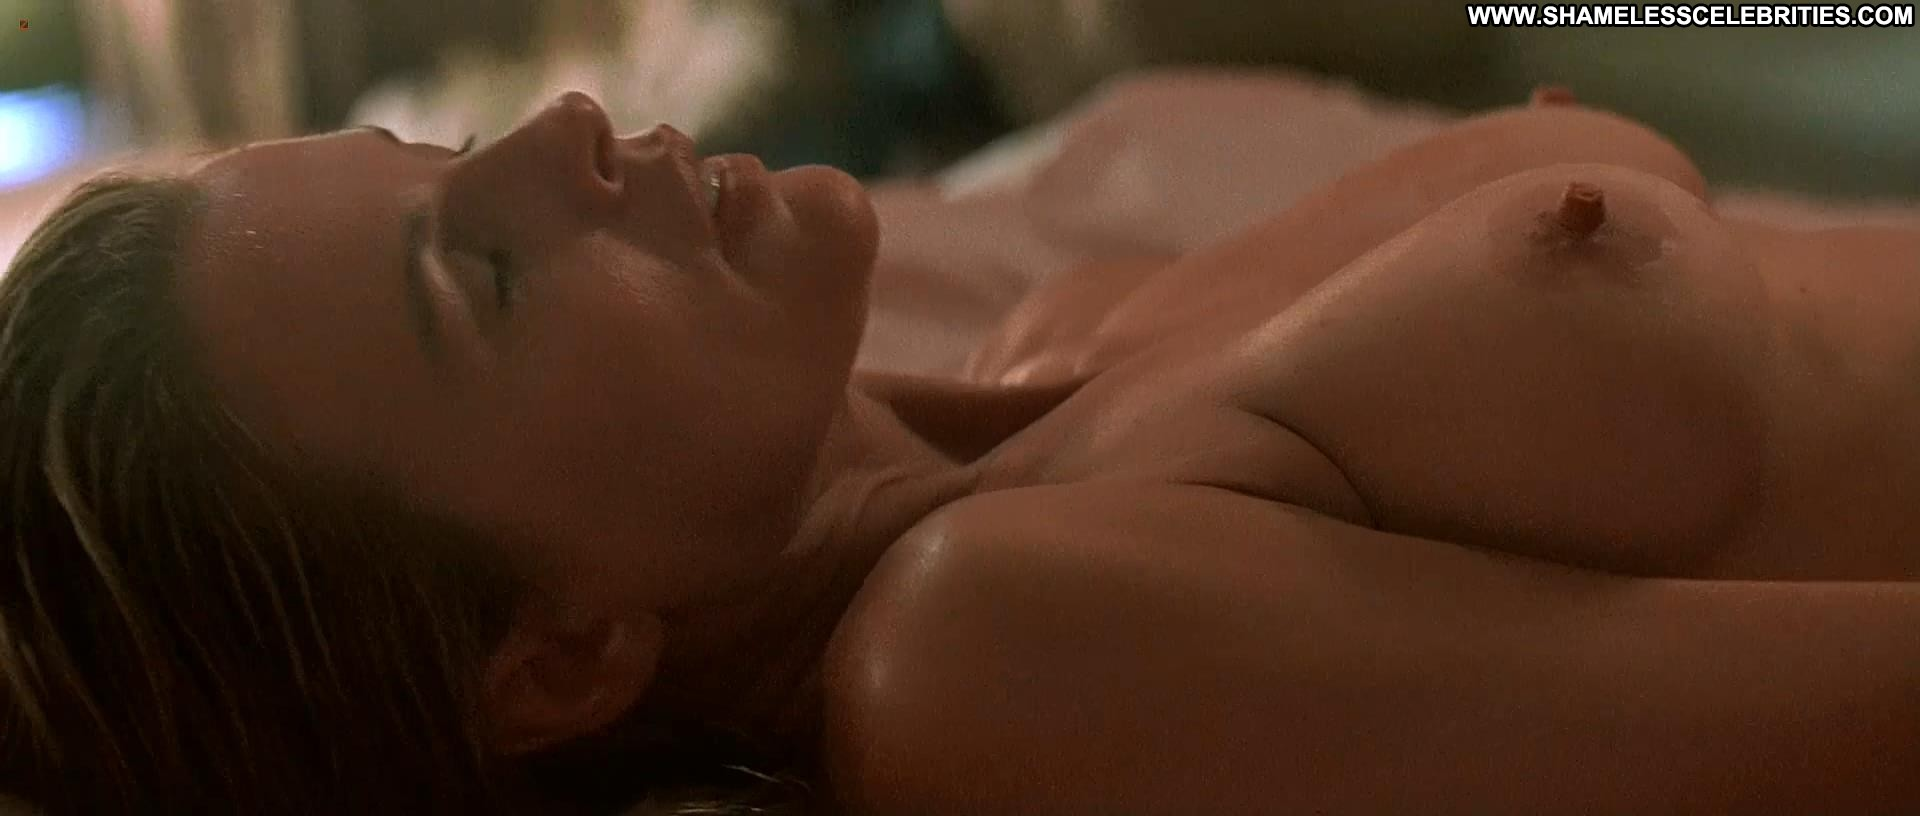 image Kim basinger in getaway Part 9